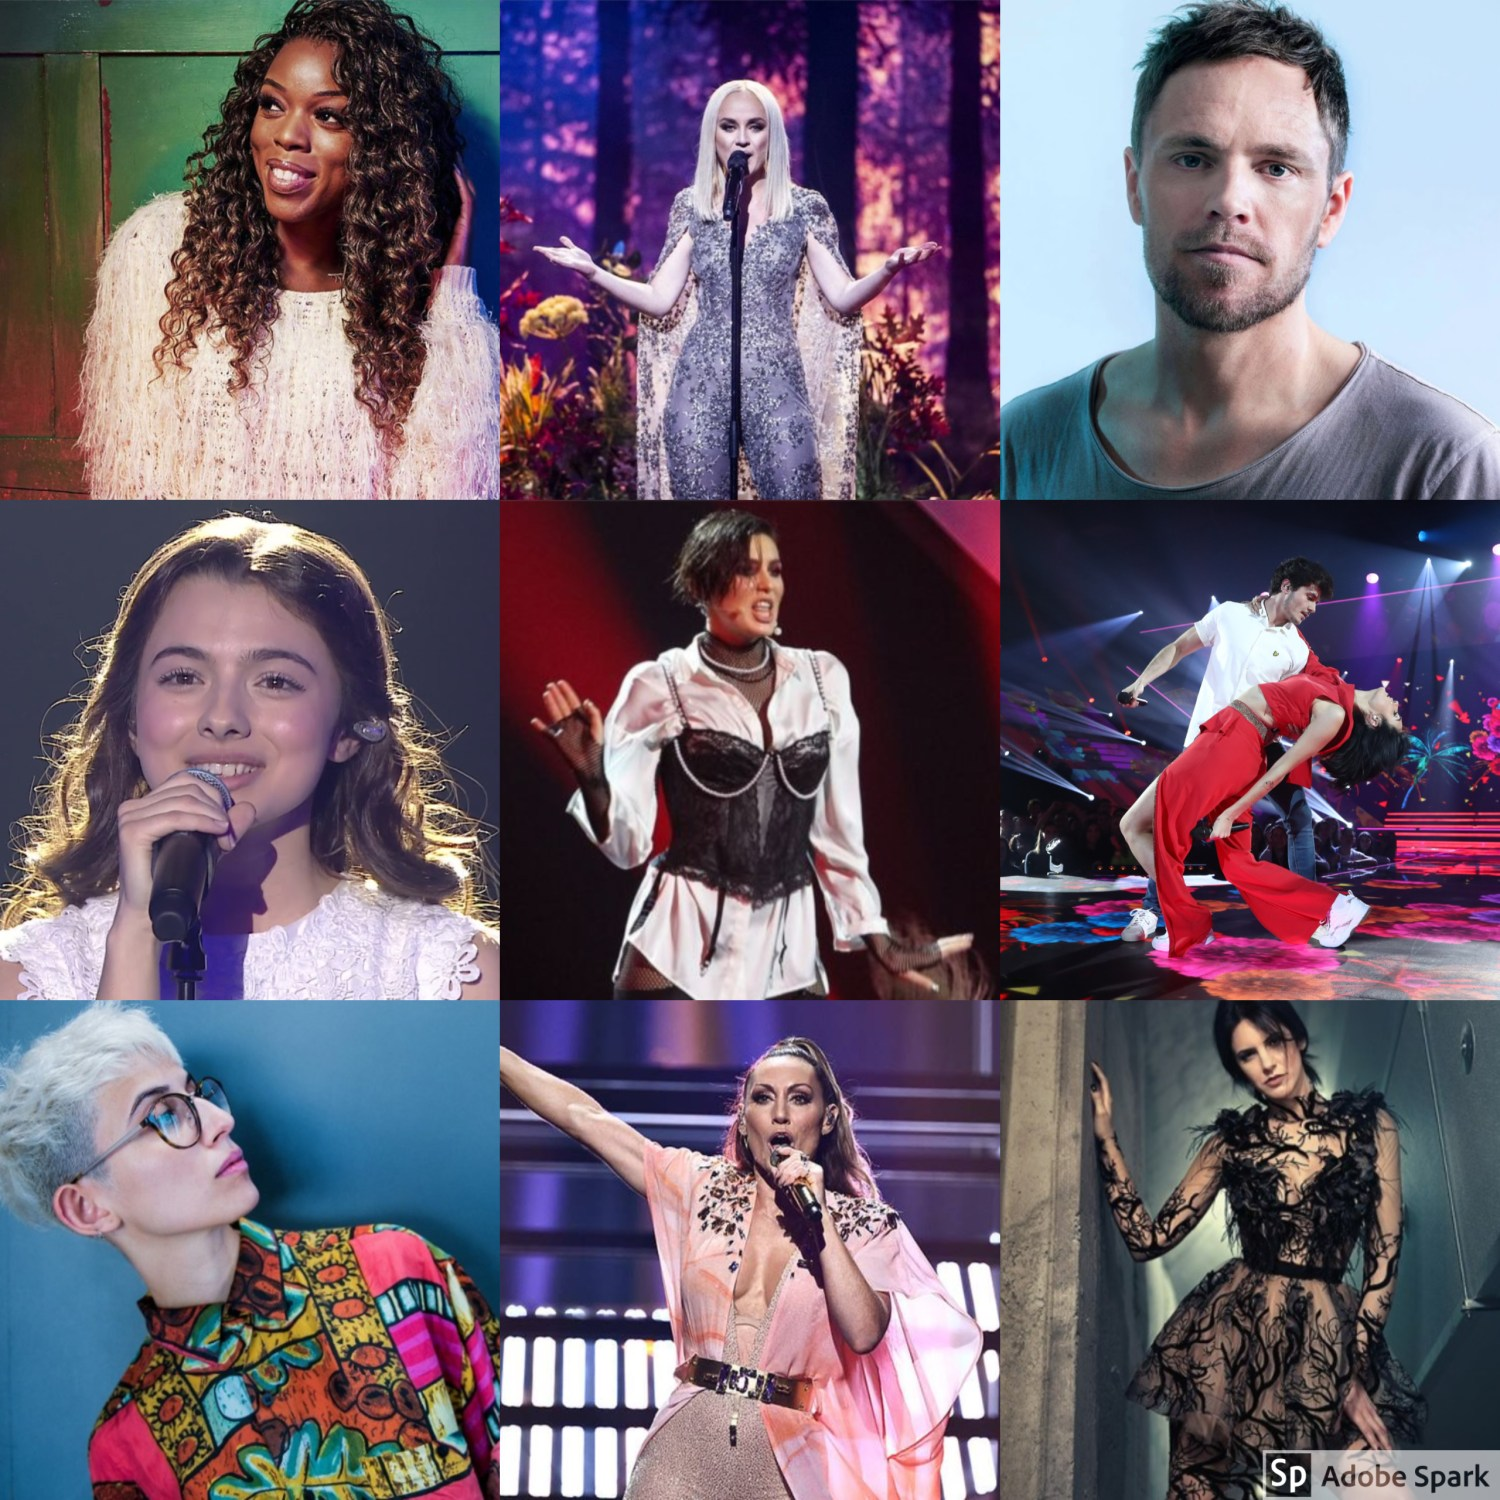 The nearly songs: national finals 2019 best of the rest part